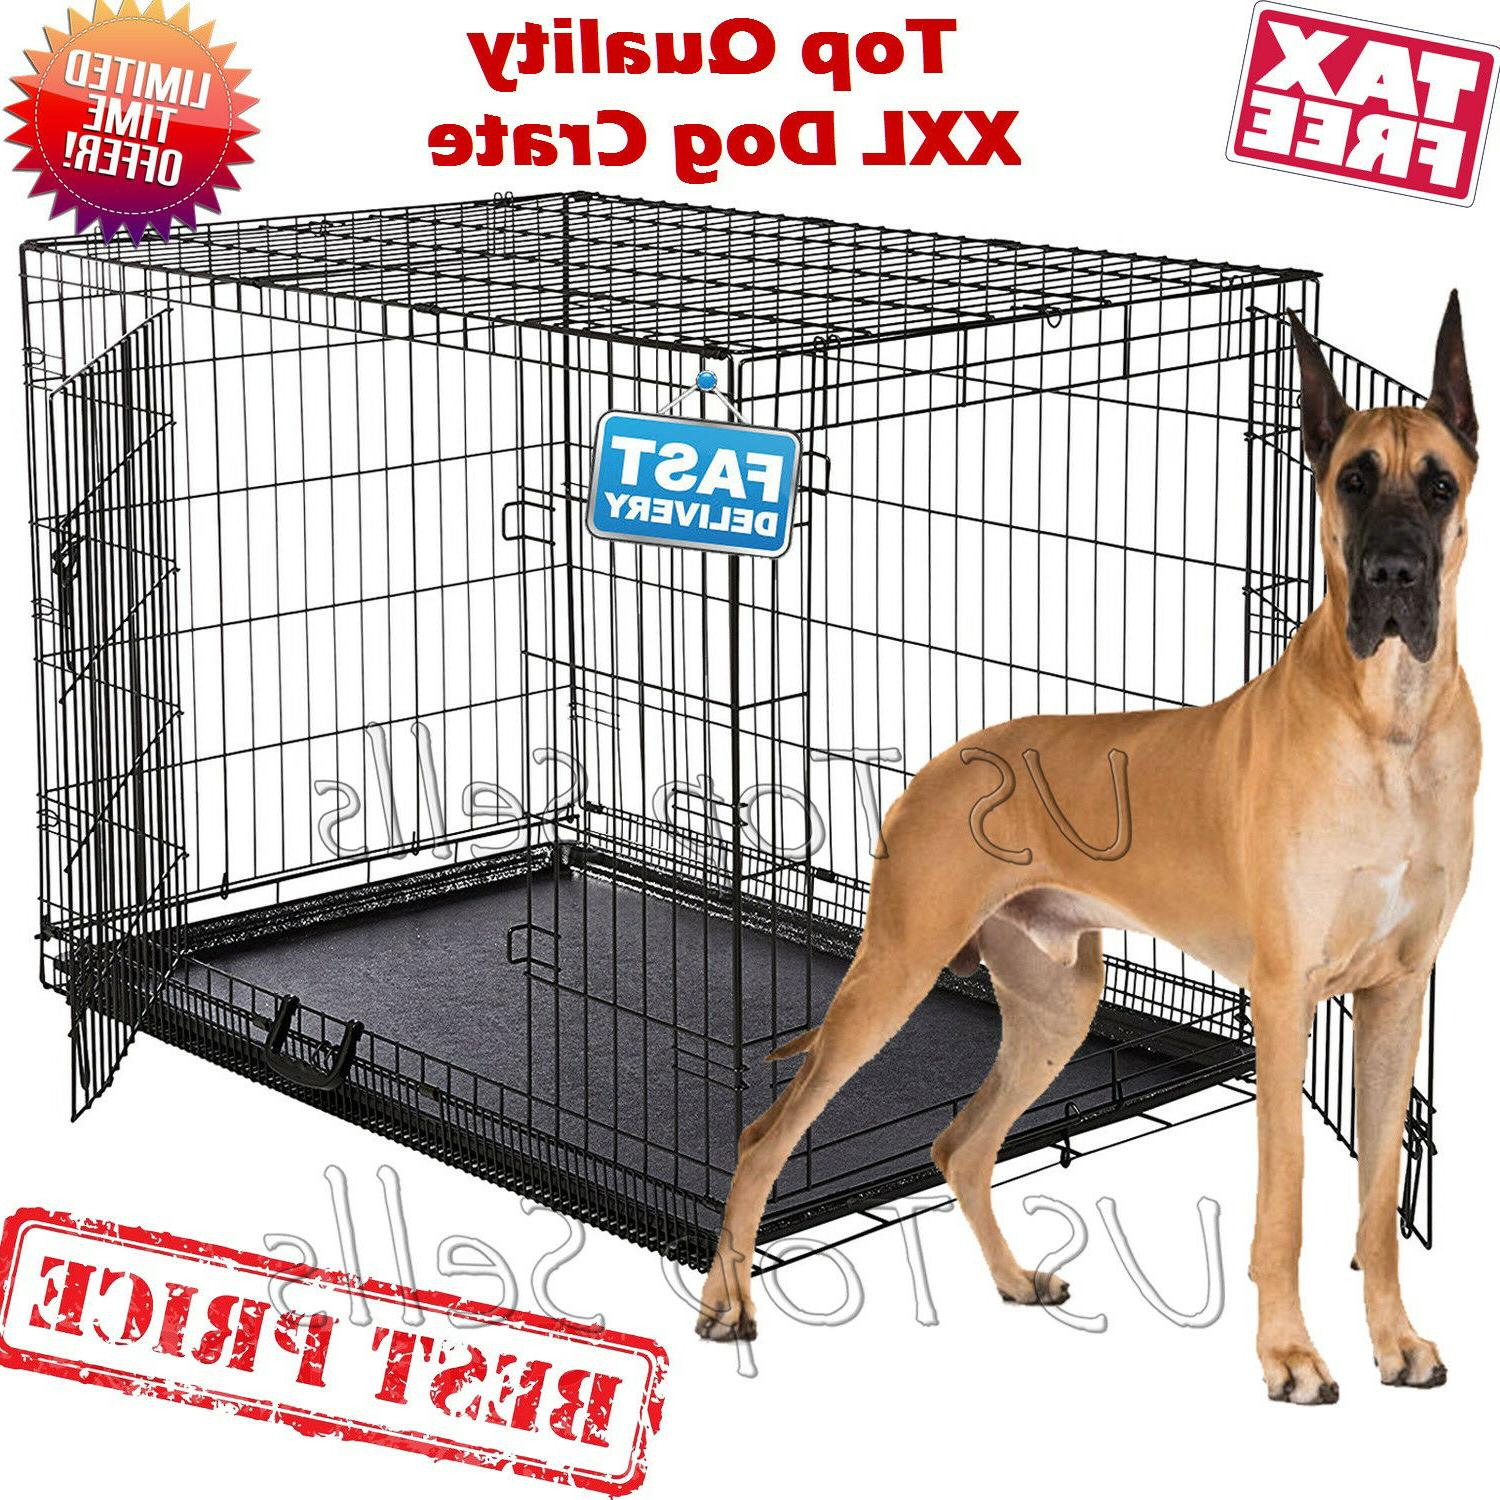 Kennel Cage Metal 2 Tray XL XXL